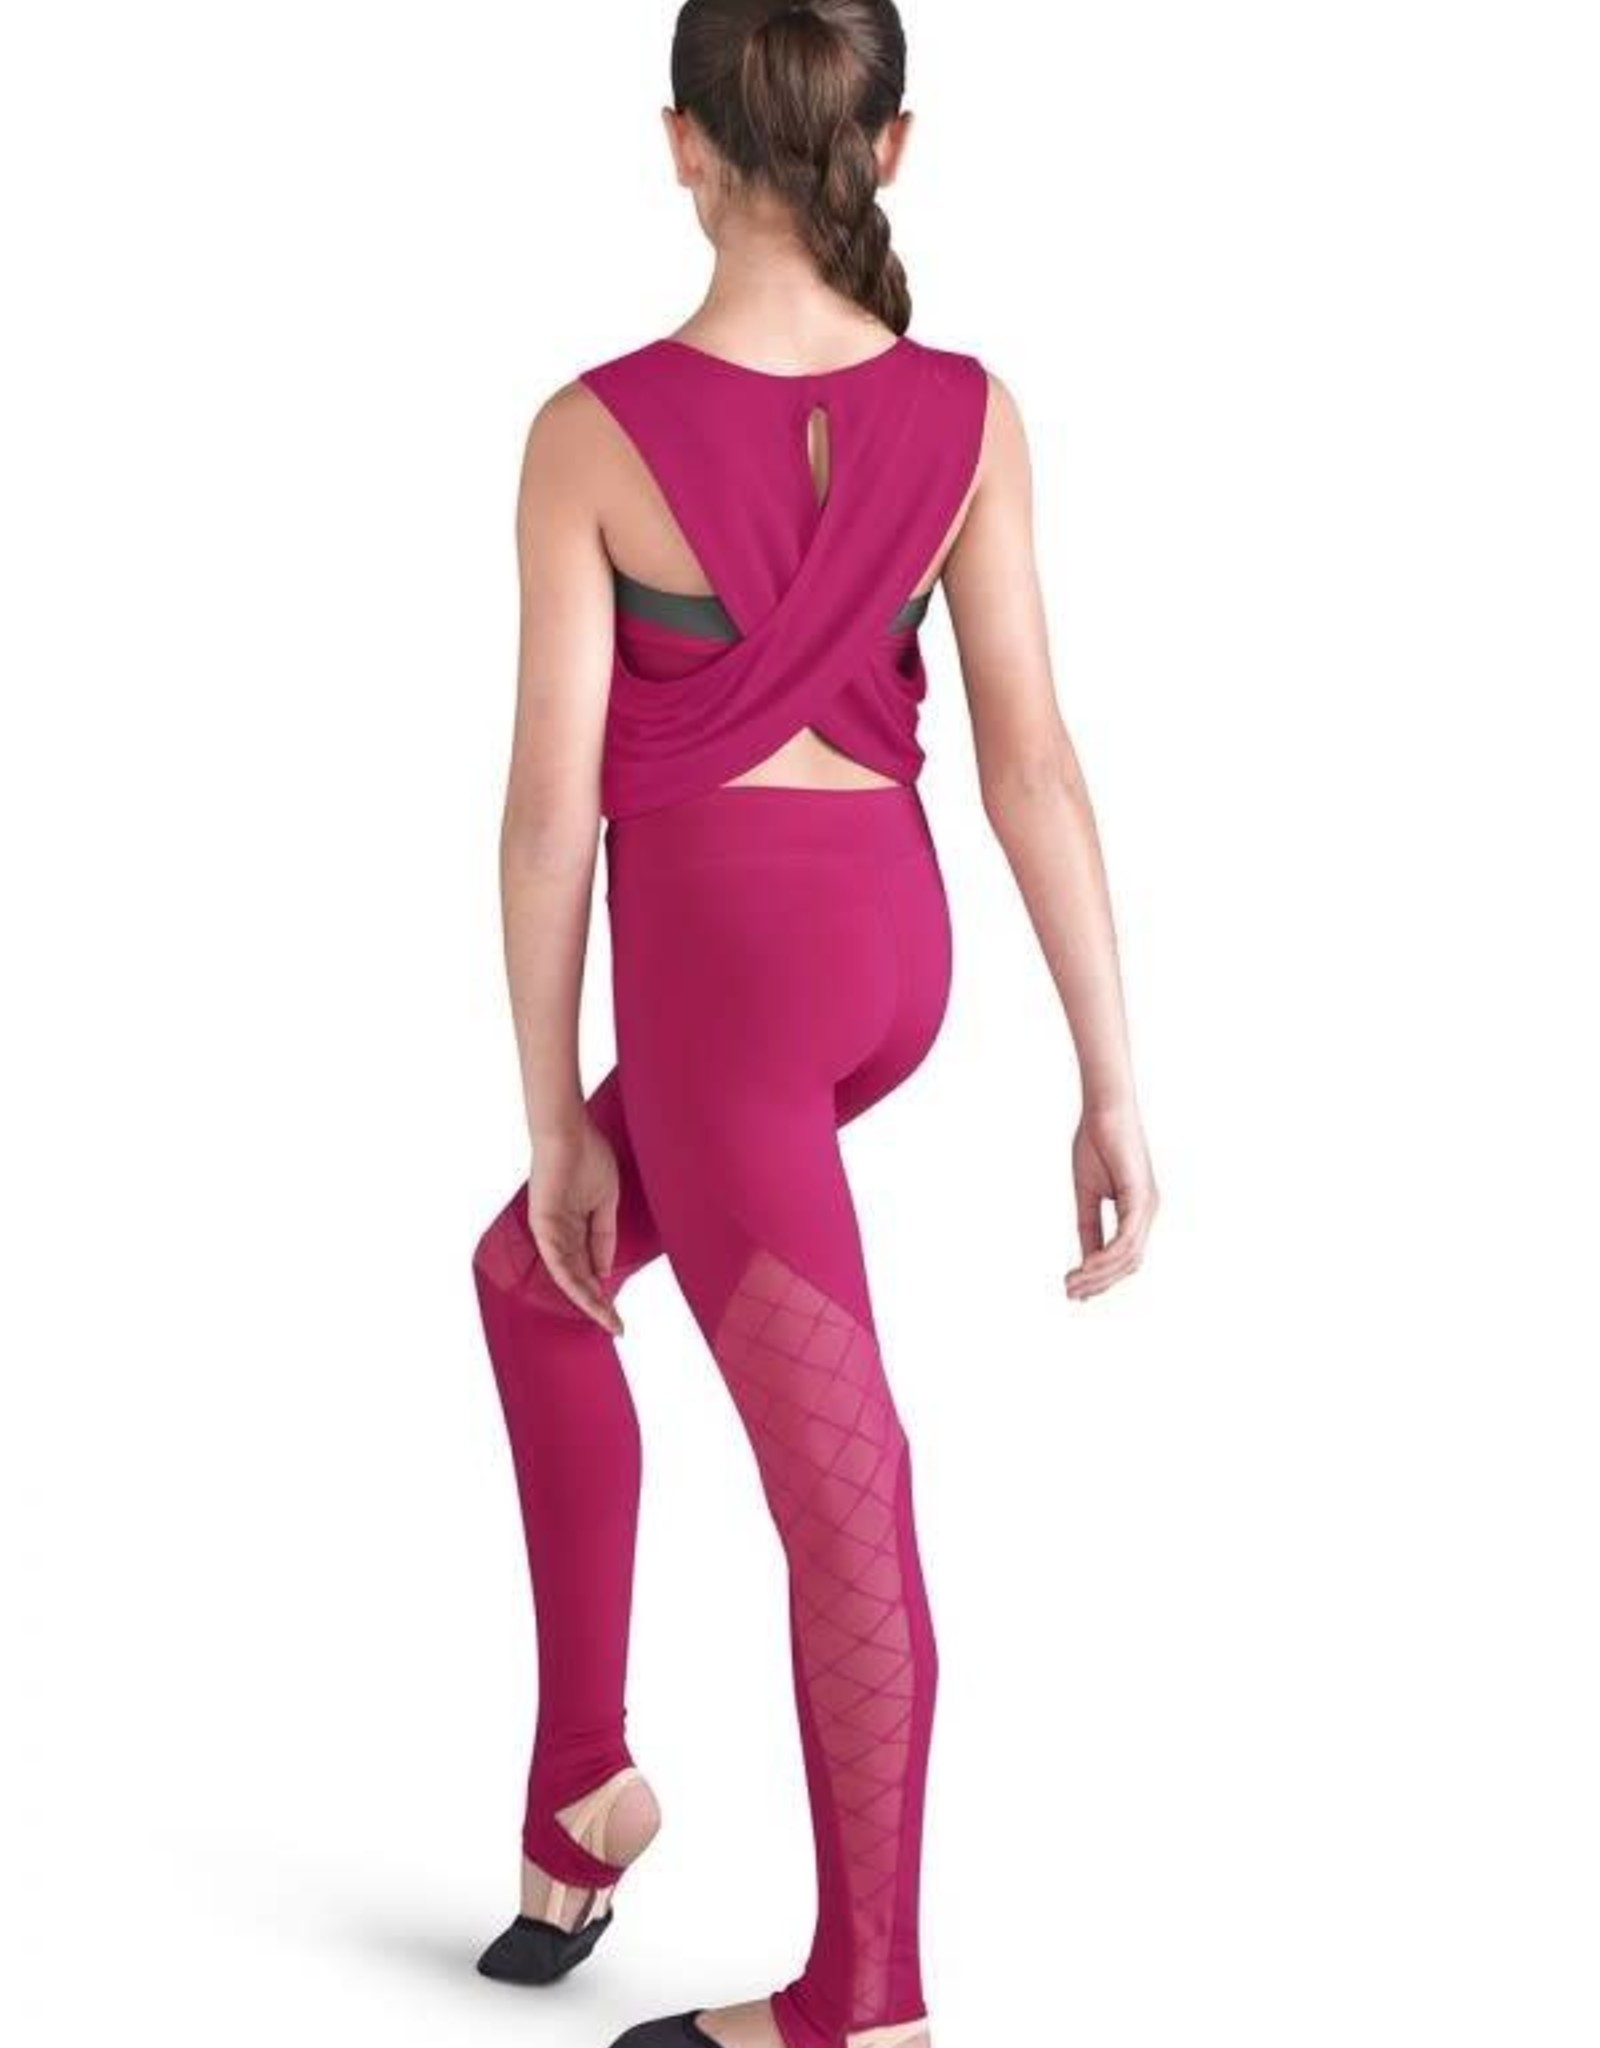 Bloch FT5079C Cropped Tank Top